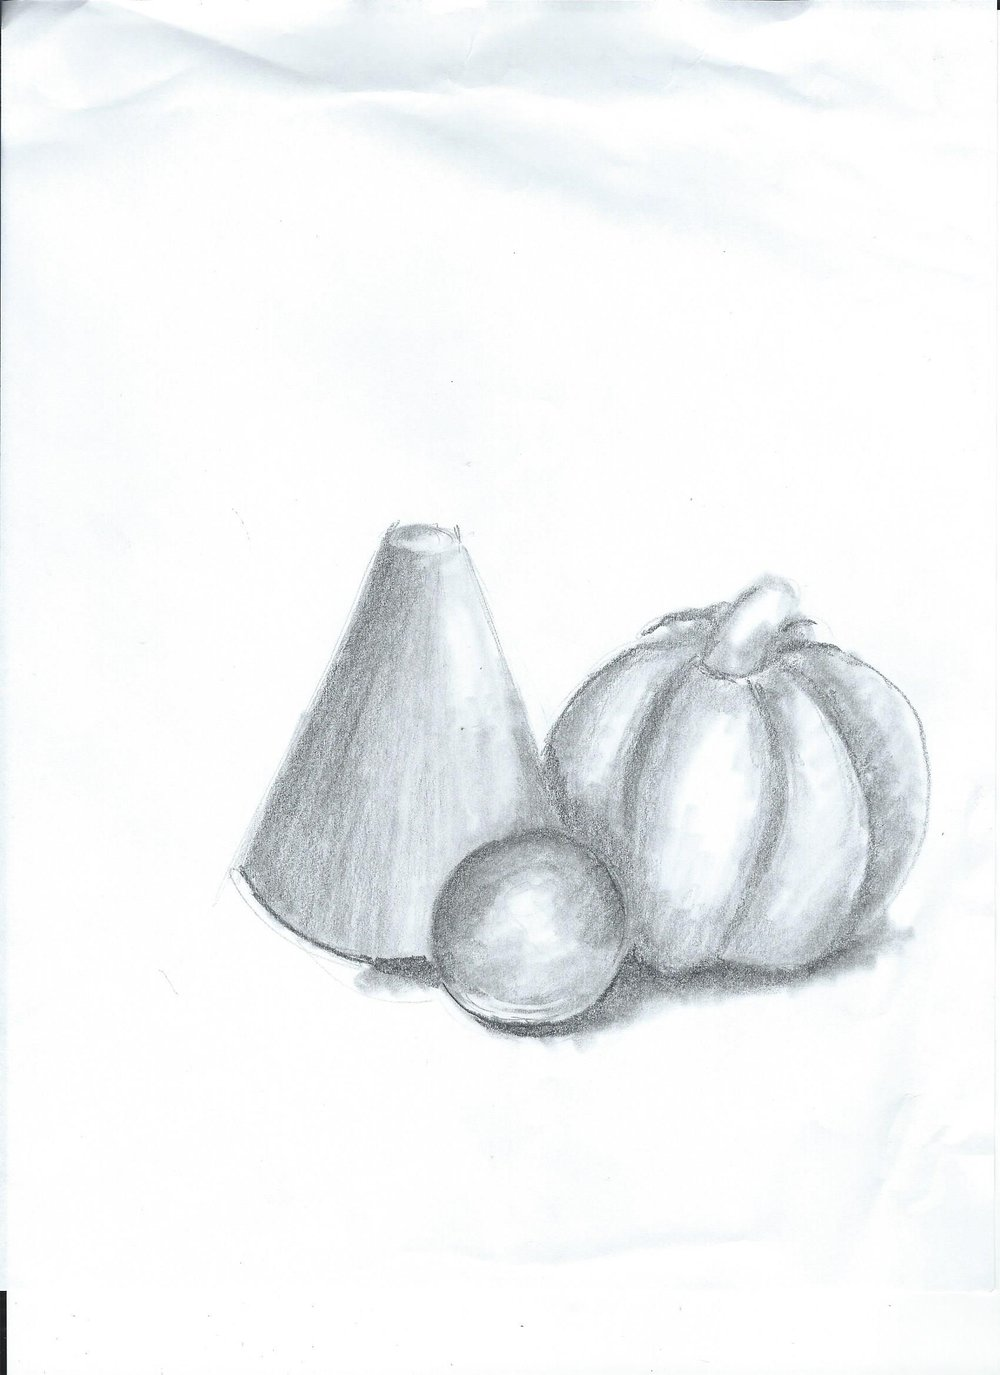 shading template 4 to 6 lesson 1.jpg